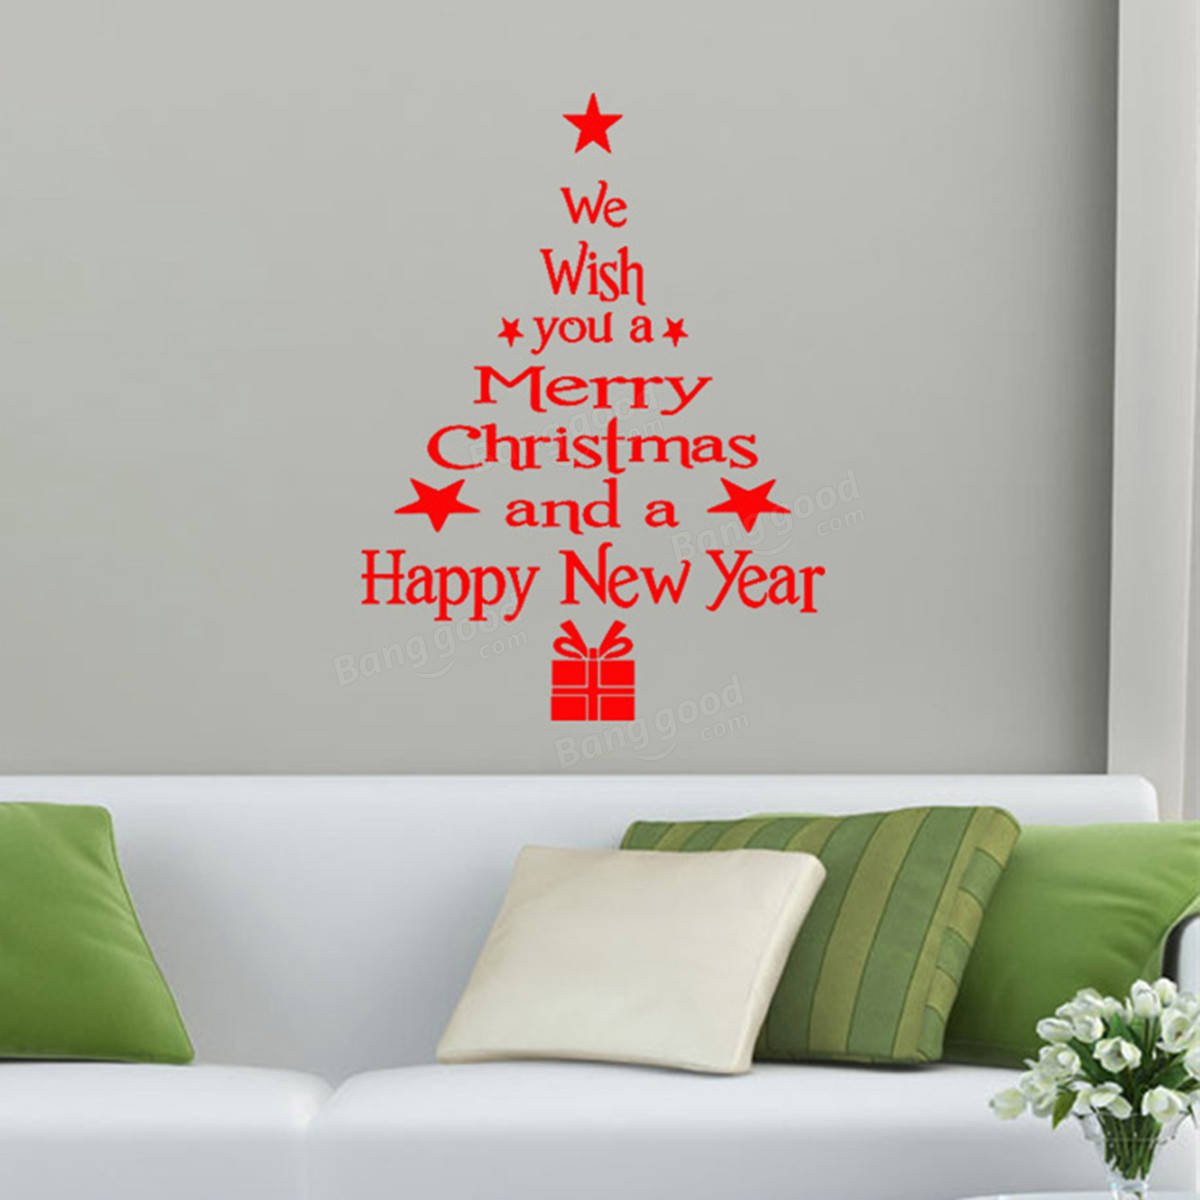 Removable merry christmas tree wall window sticker home party removable merry christmas tree wall window sticker home party decoration amipublicfo Images